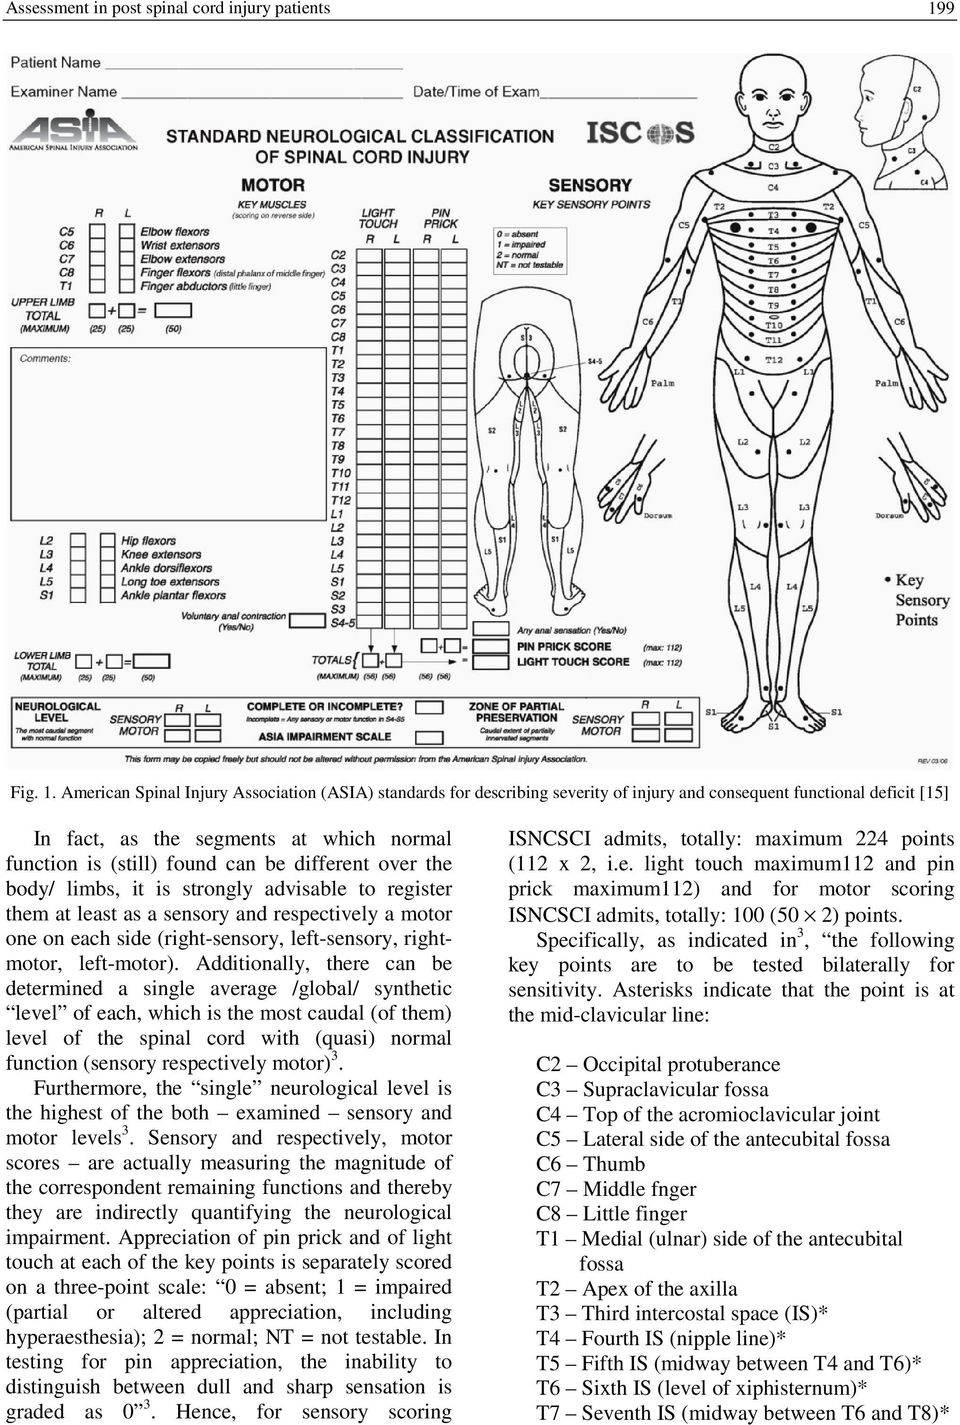 American Spinal Injury Association (ASIA) standards for describing severity of injury and consequent functional deficit [15] In fact, as the segments at which normal function is (still) found can be